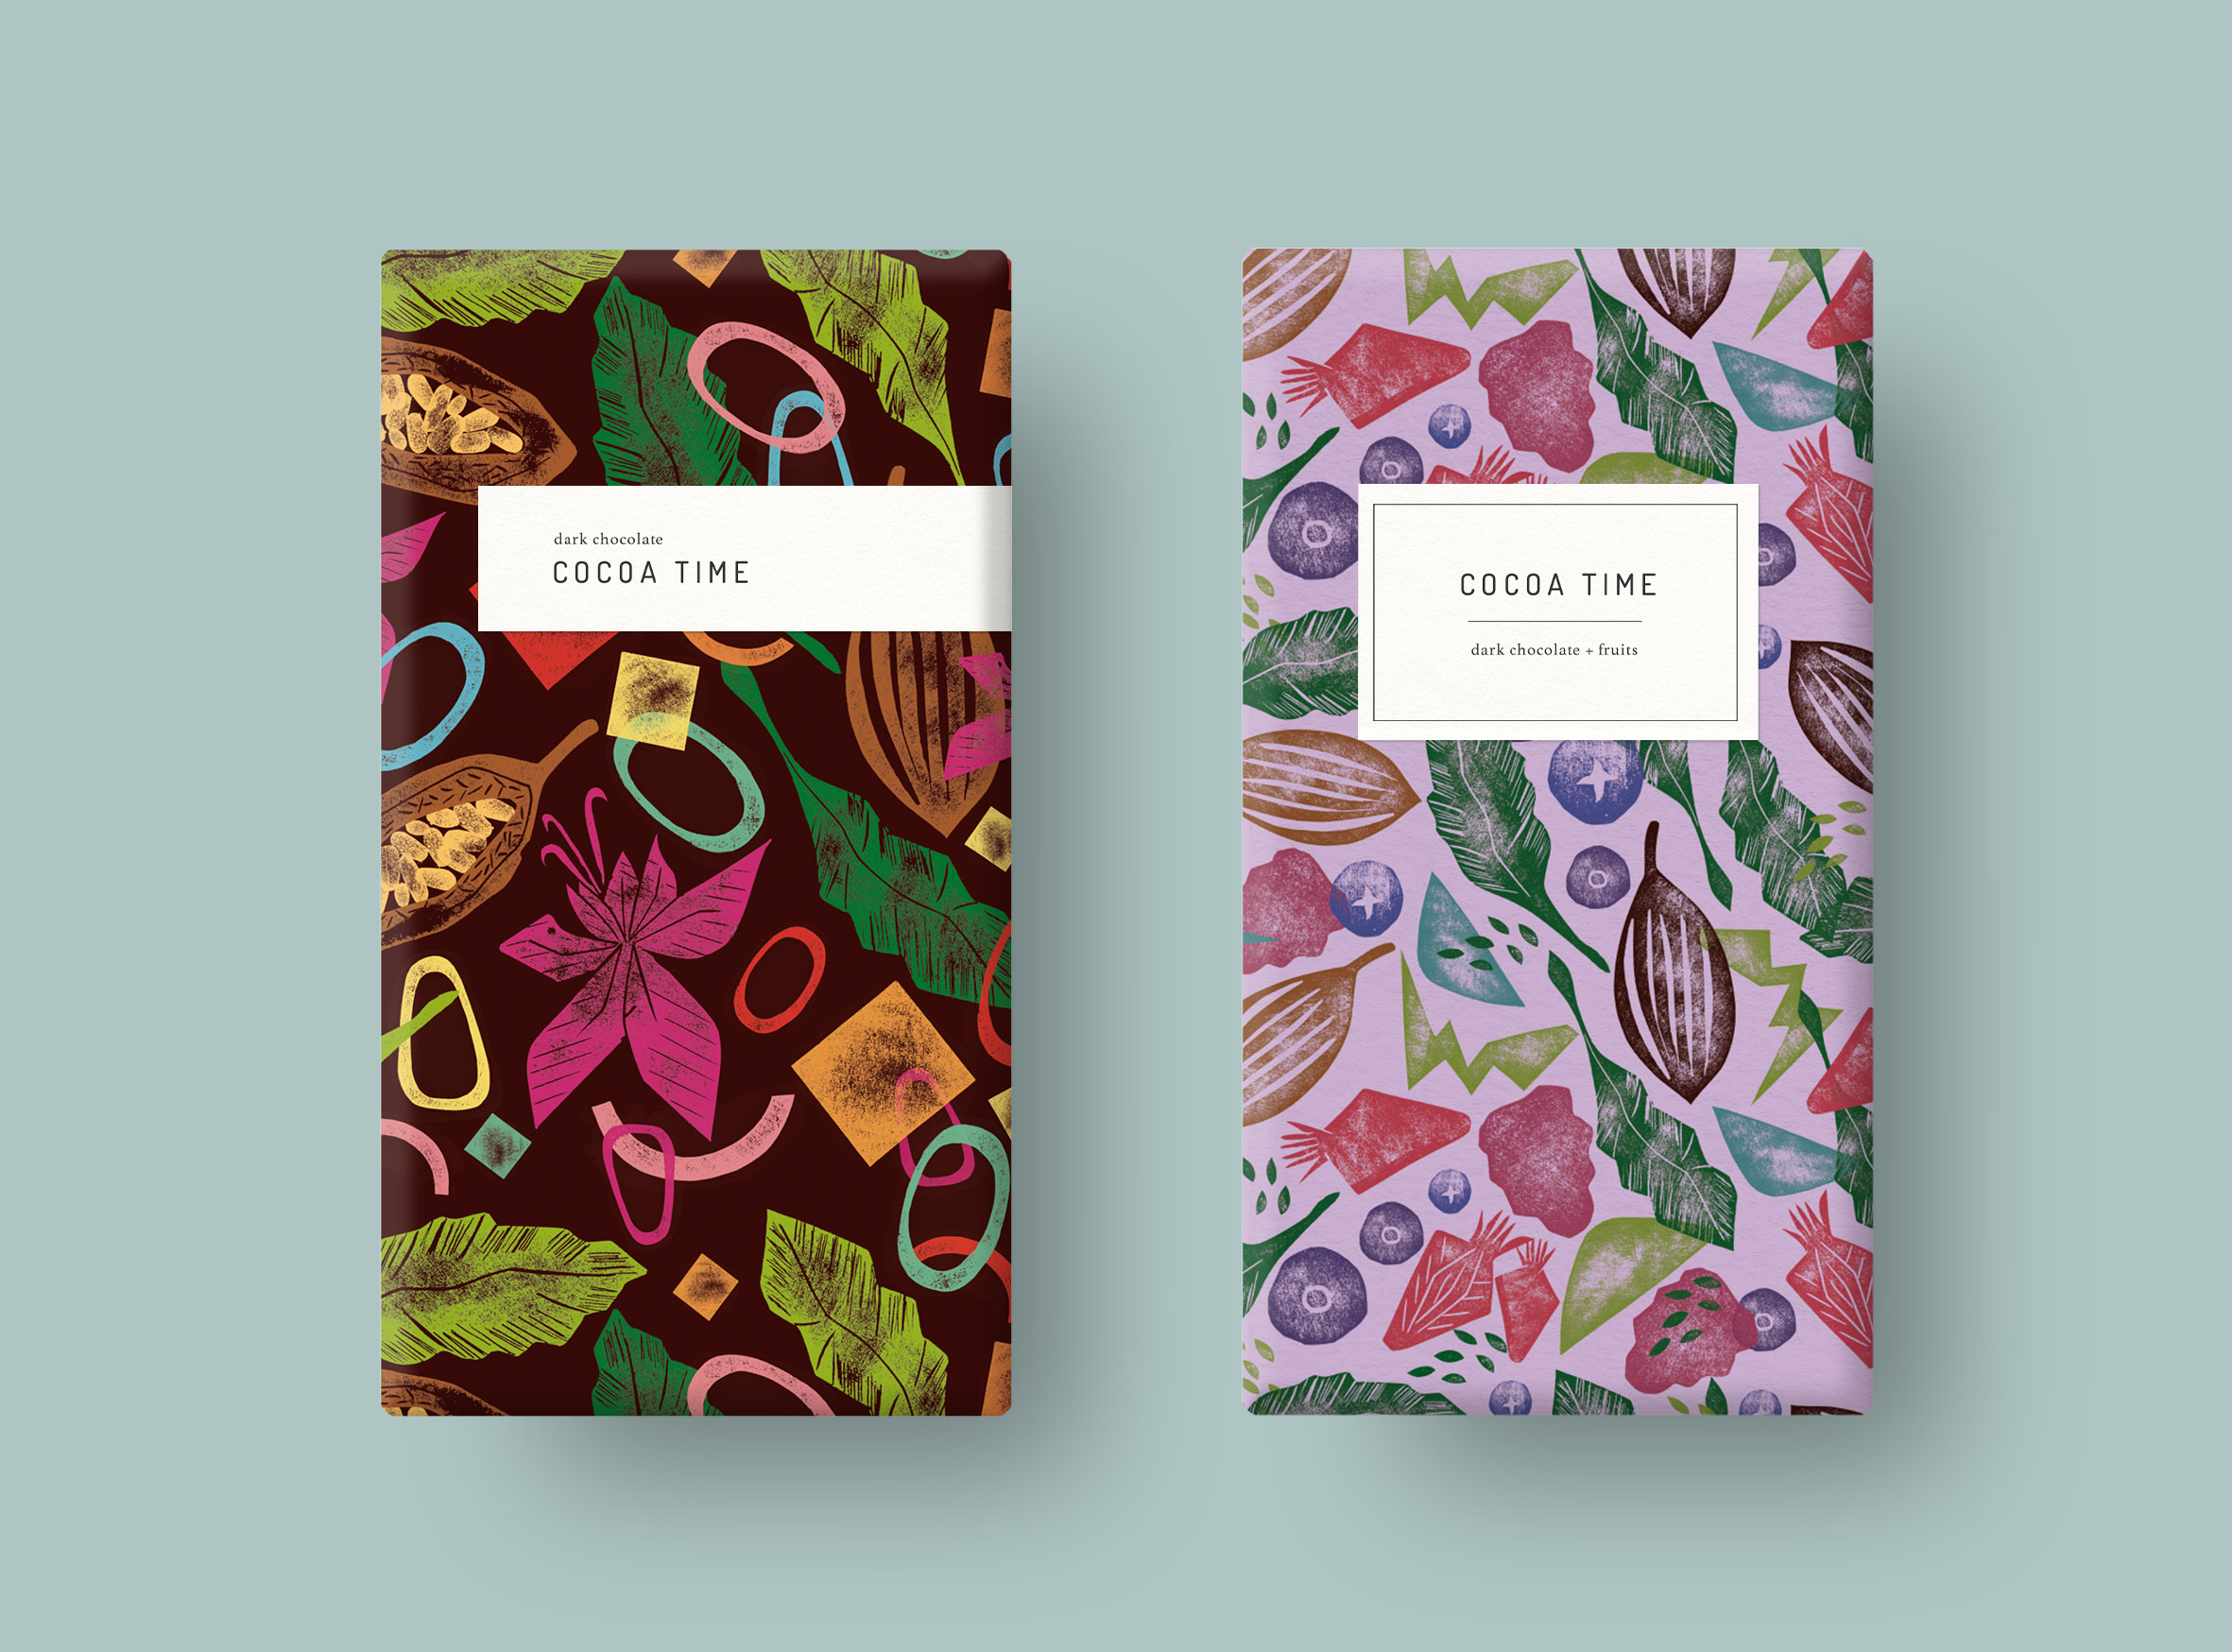 Studio Gudulab 'Cocoa Time' Patterns Proposal on Chocolate Packaging